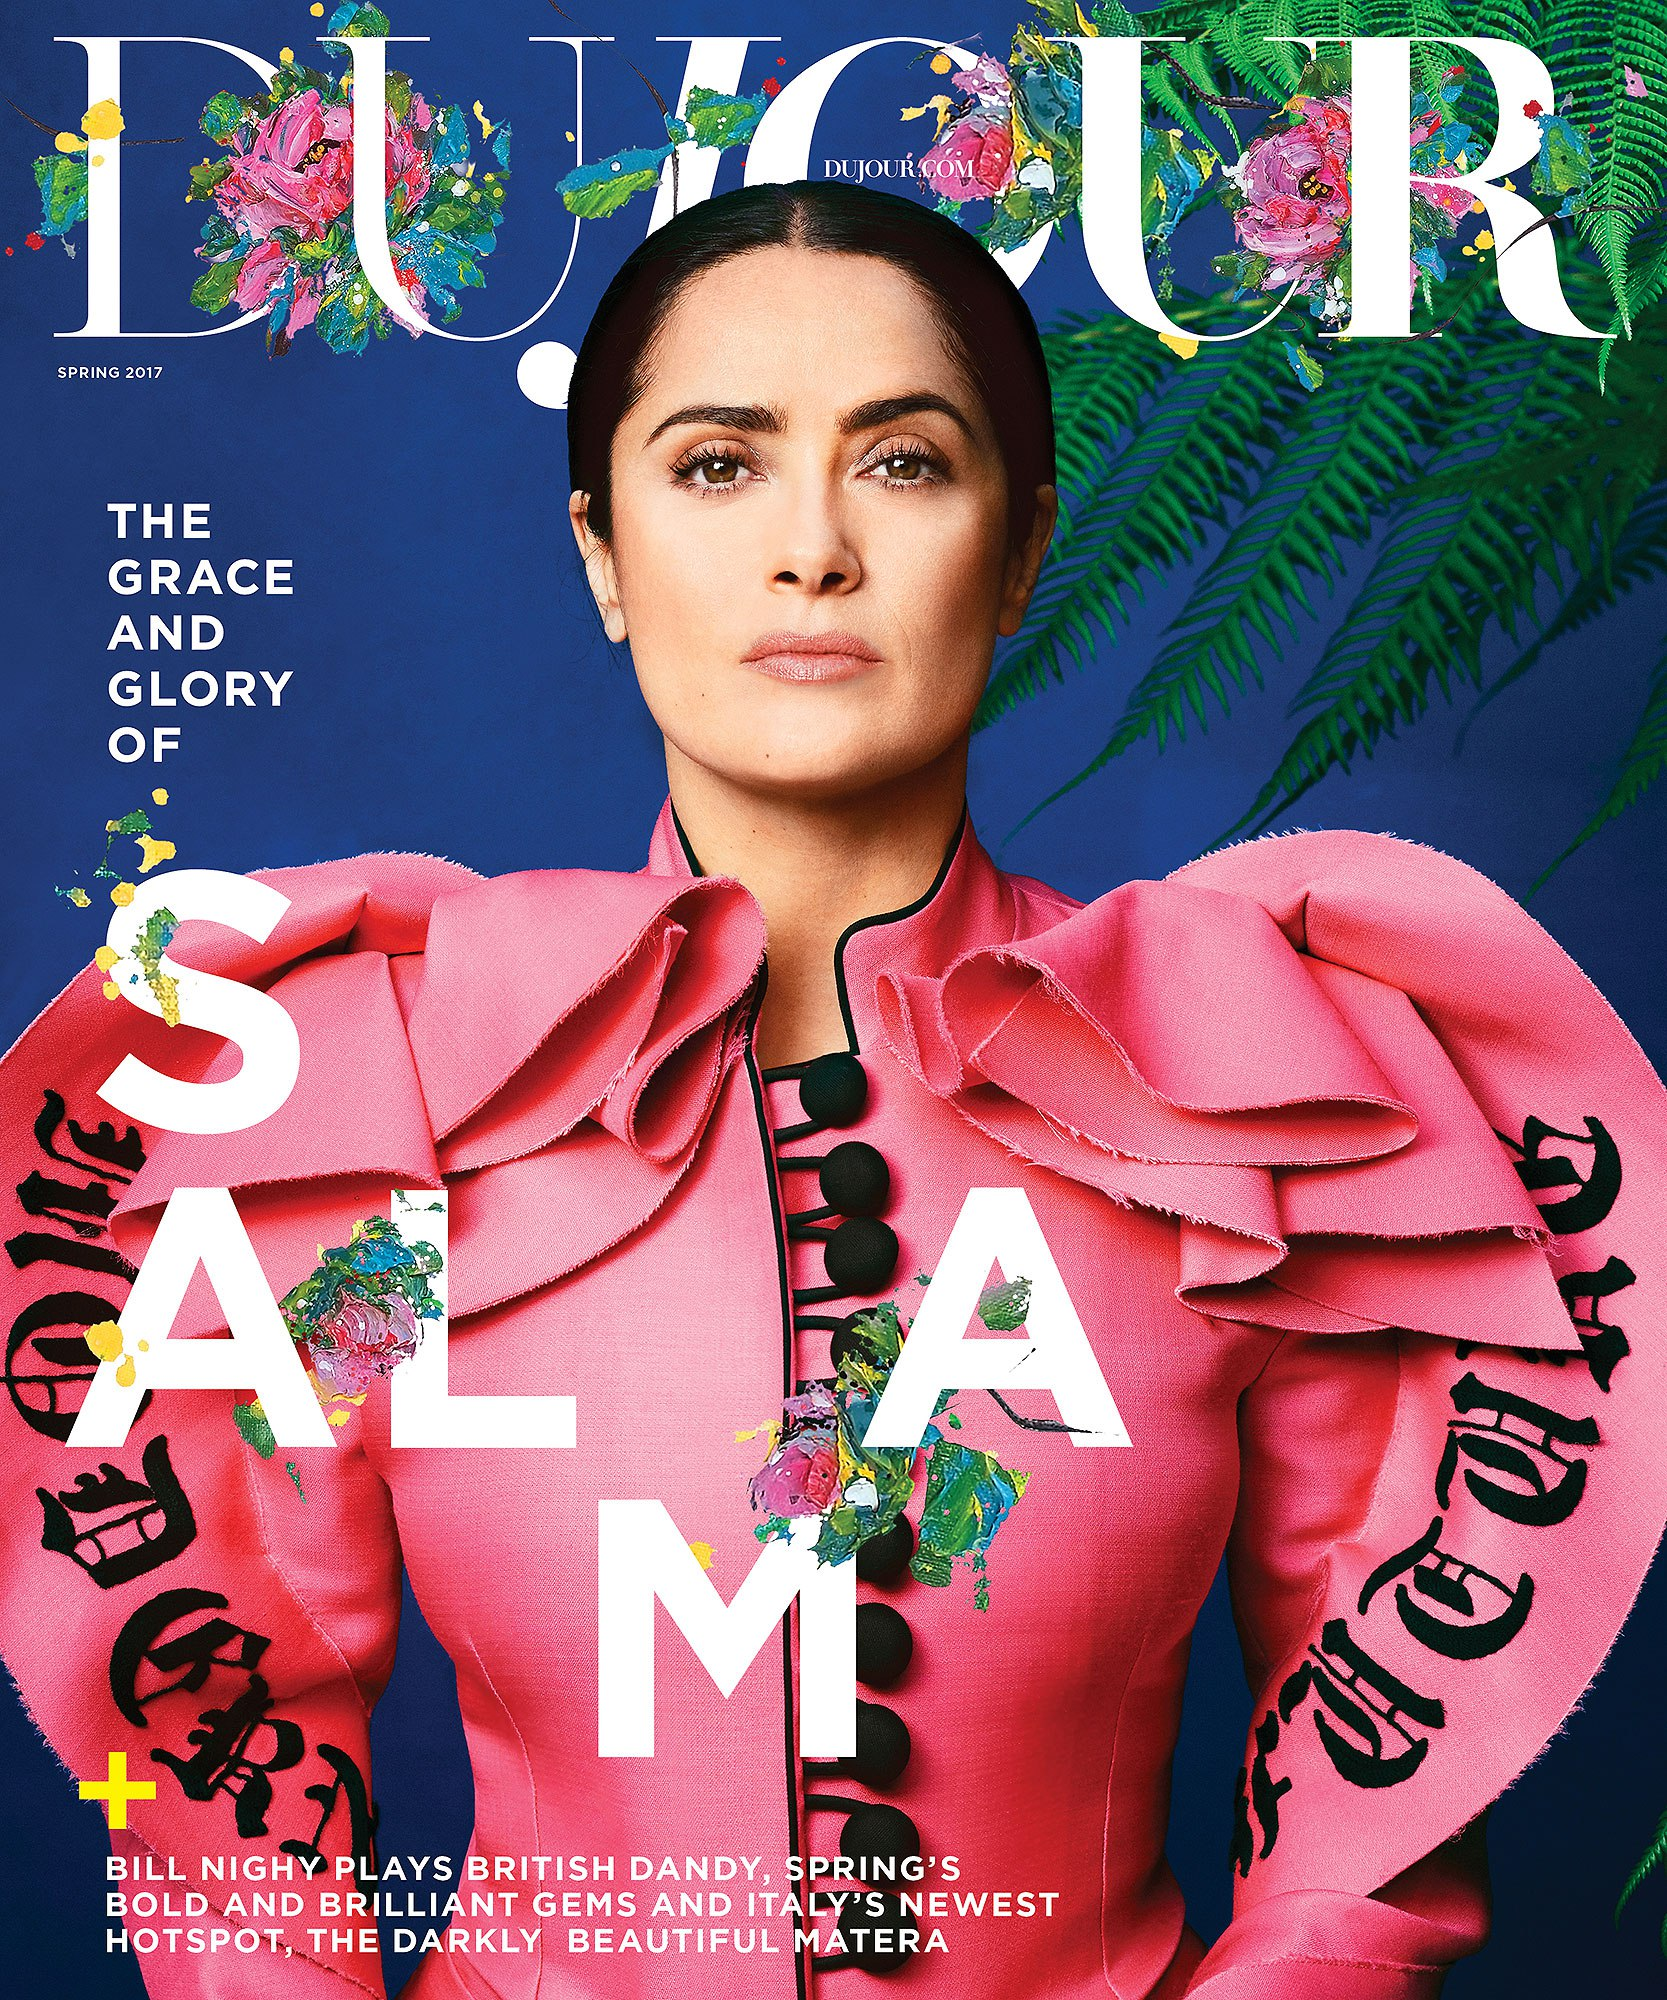 The Grace and Glory of Salma Hayek